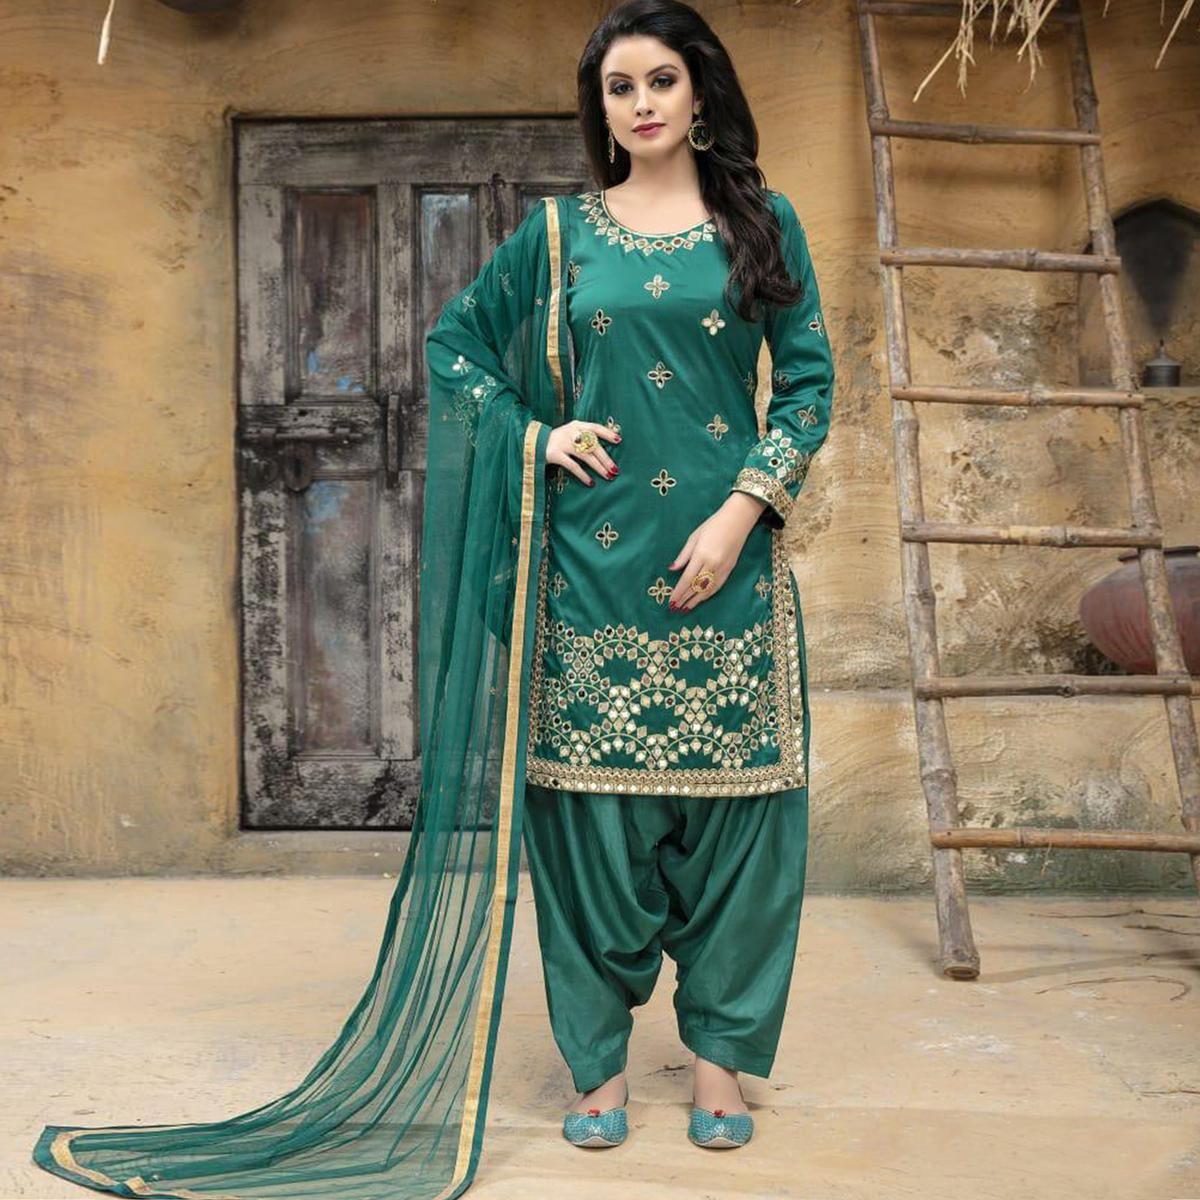 Staring Teal Green Colored Party Wear Embroidered Tapetta Silk Suit